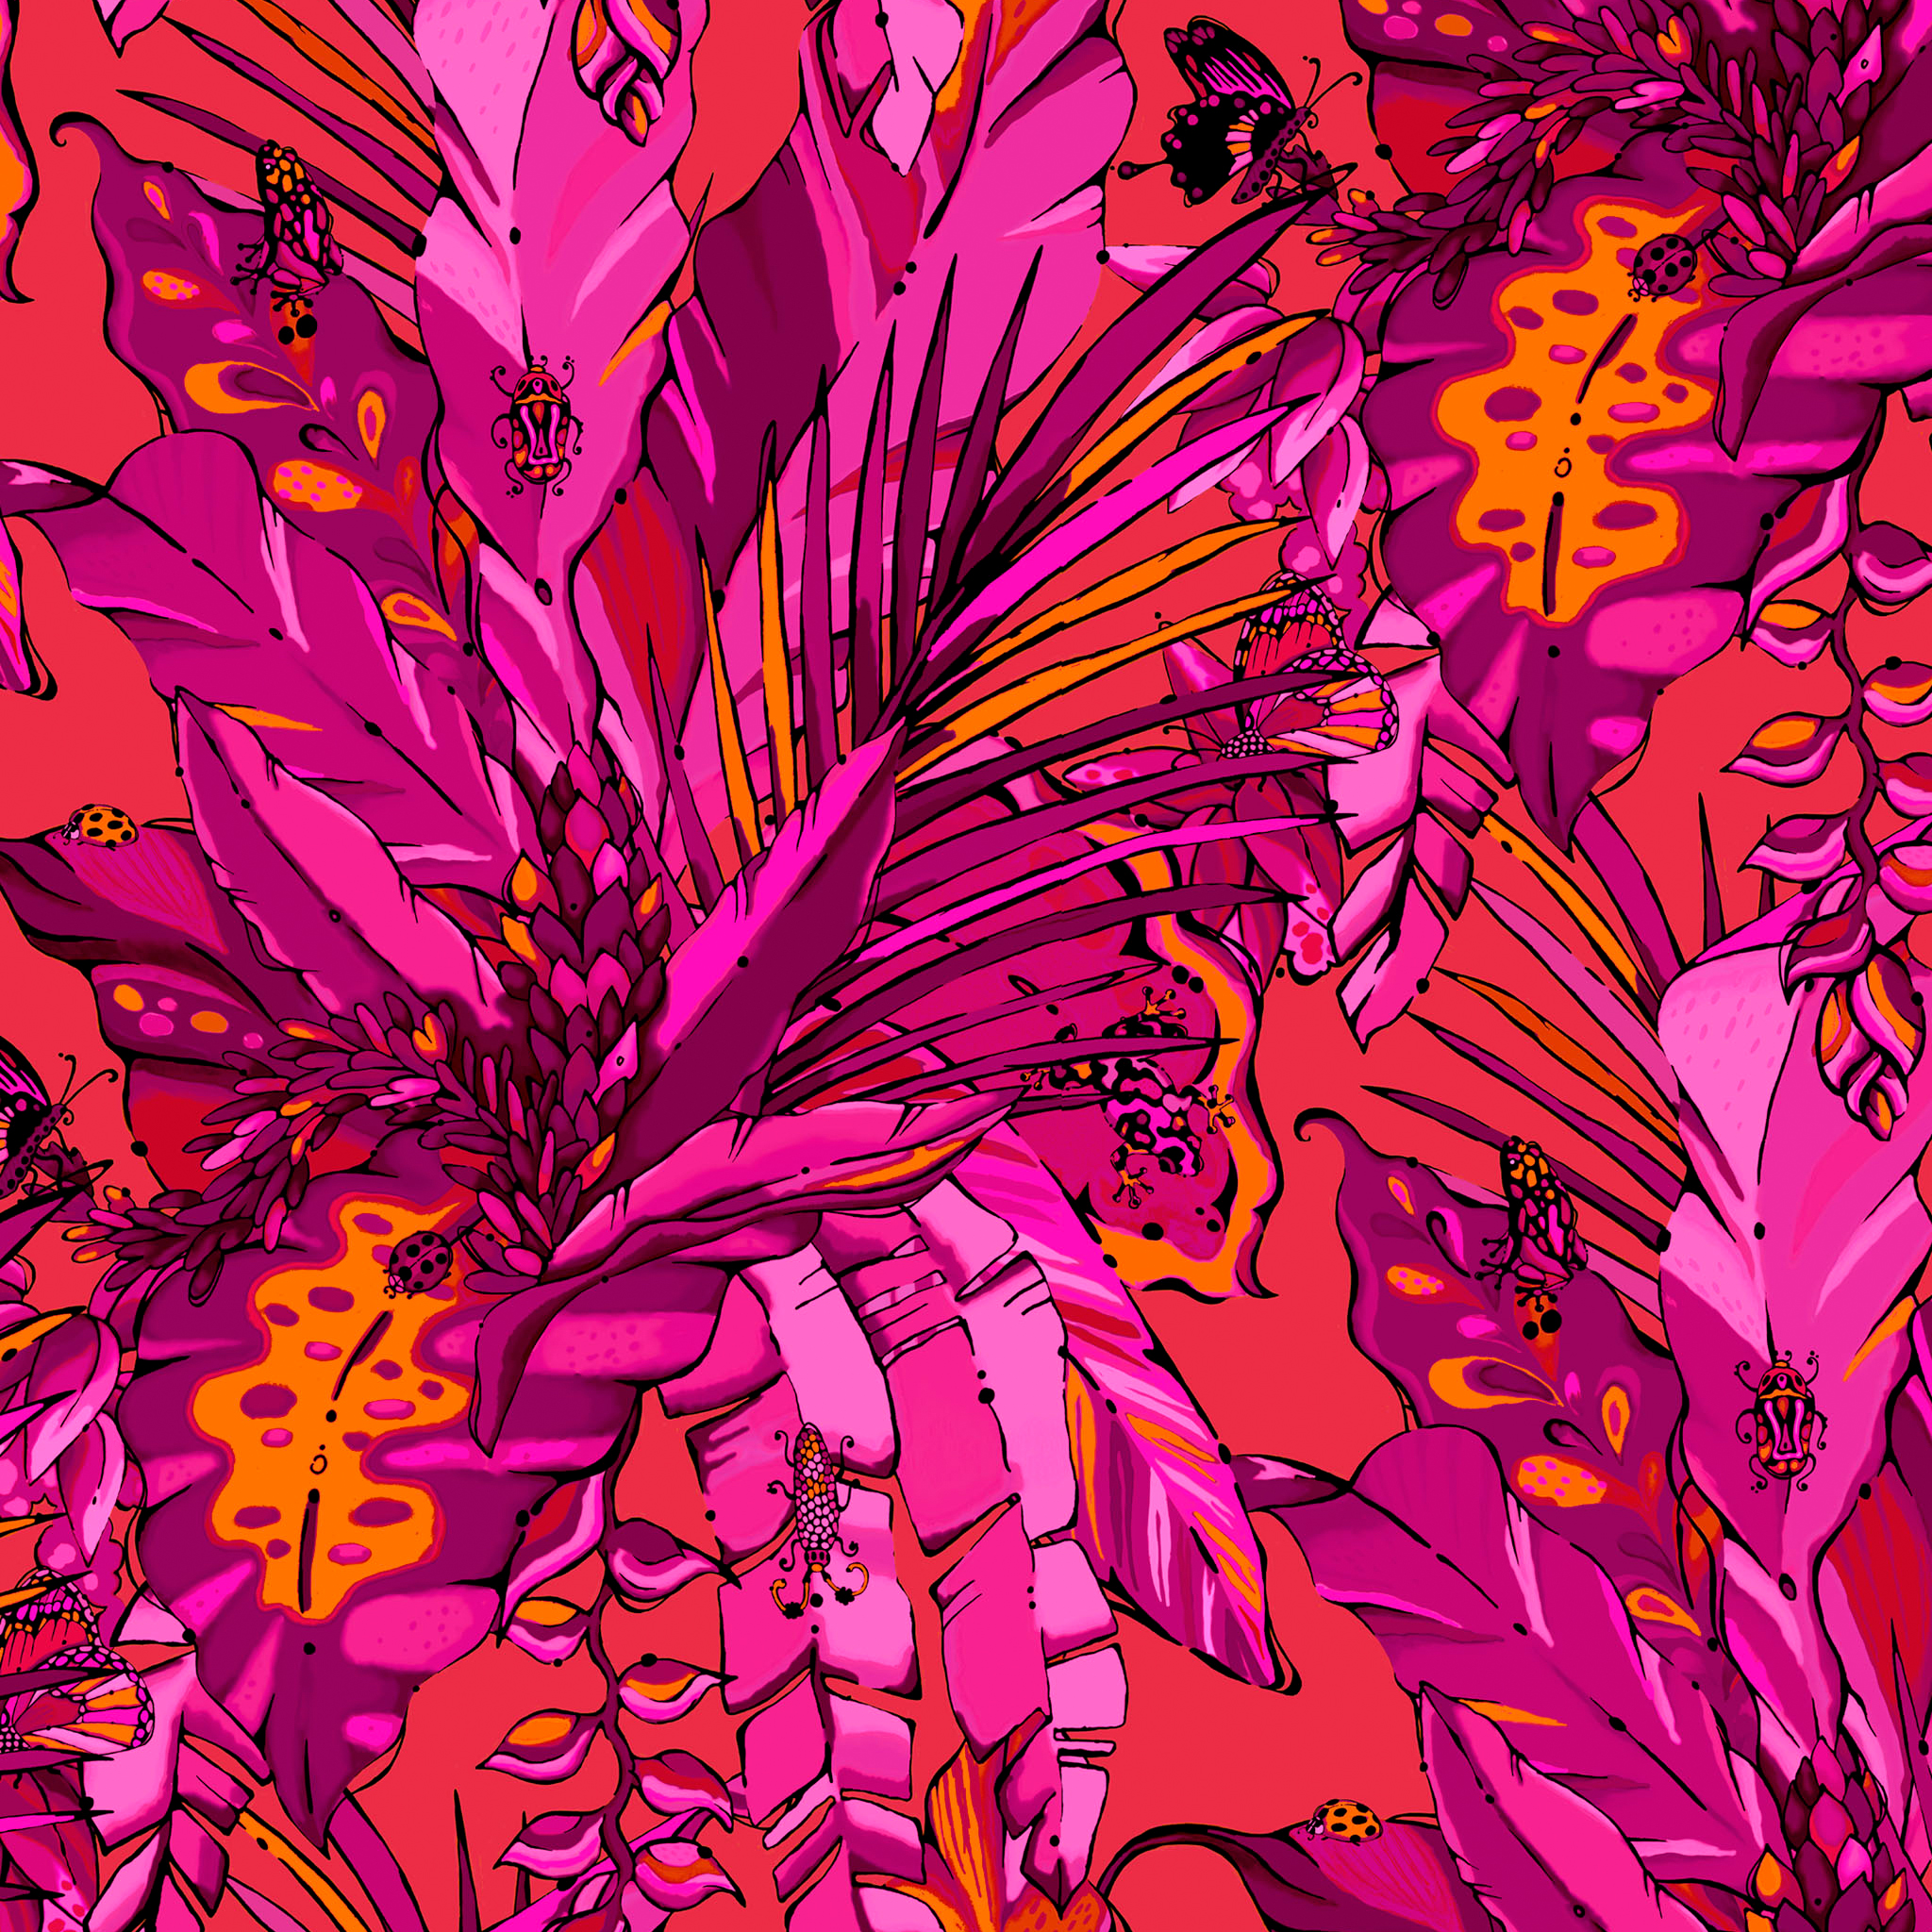 lush tropical wallpaper from aase hopstock